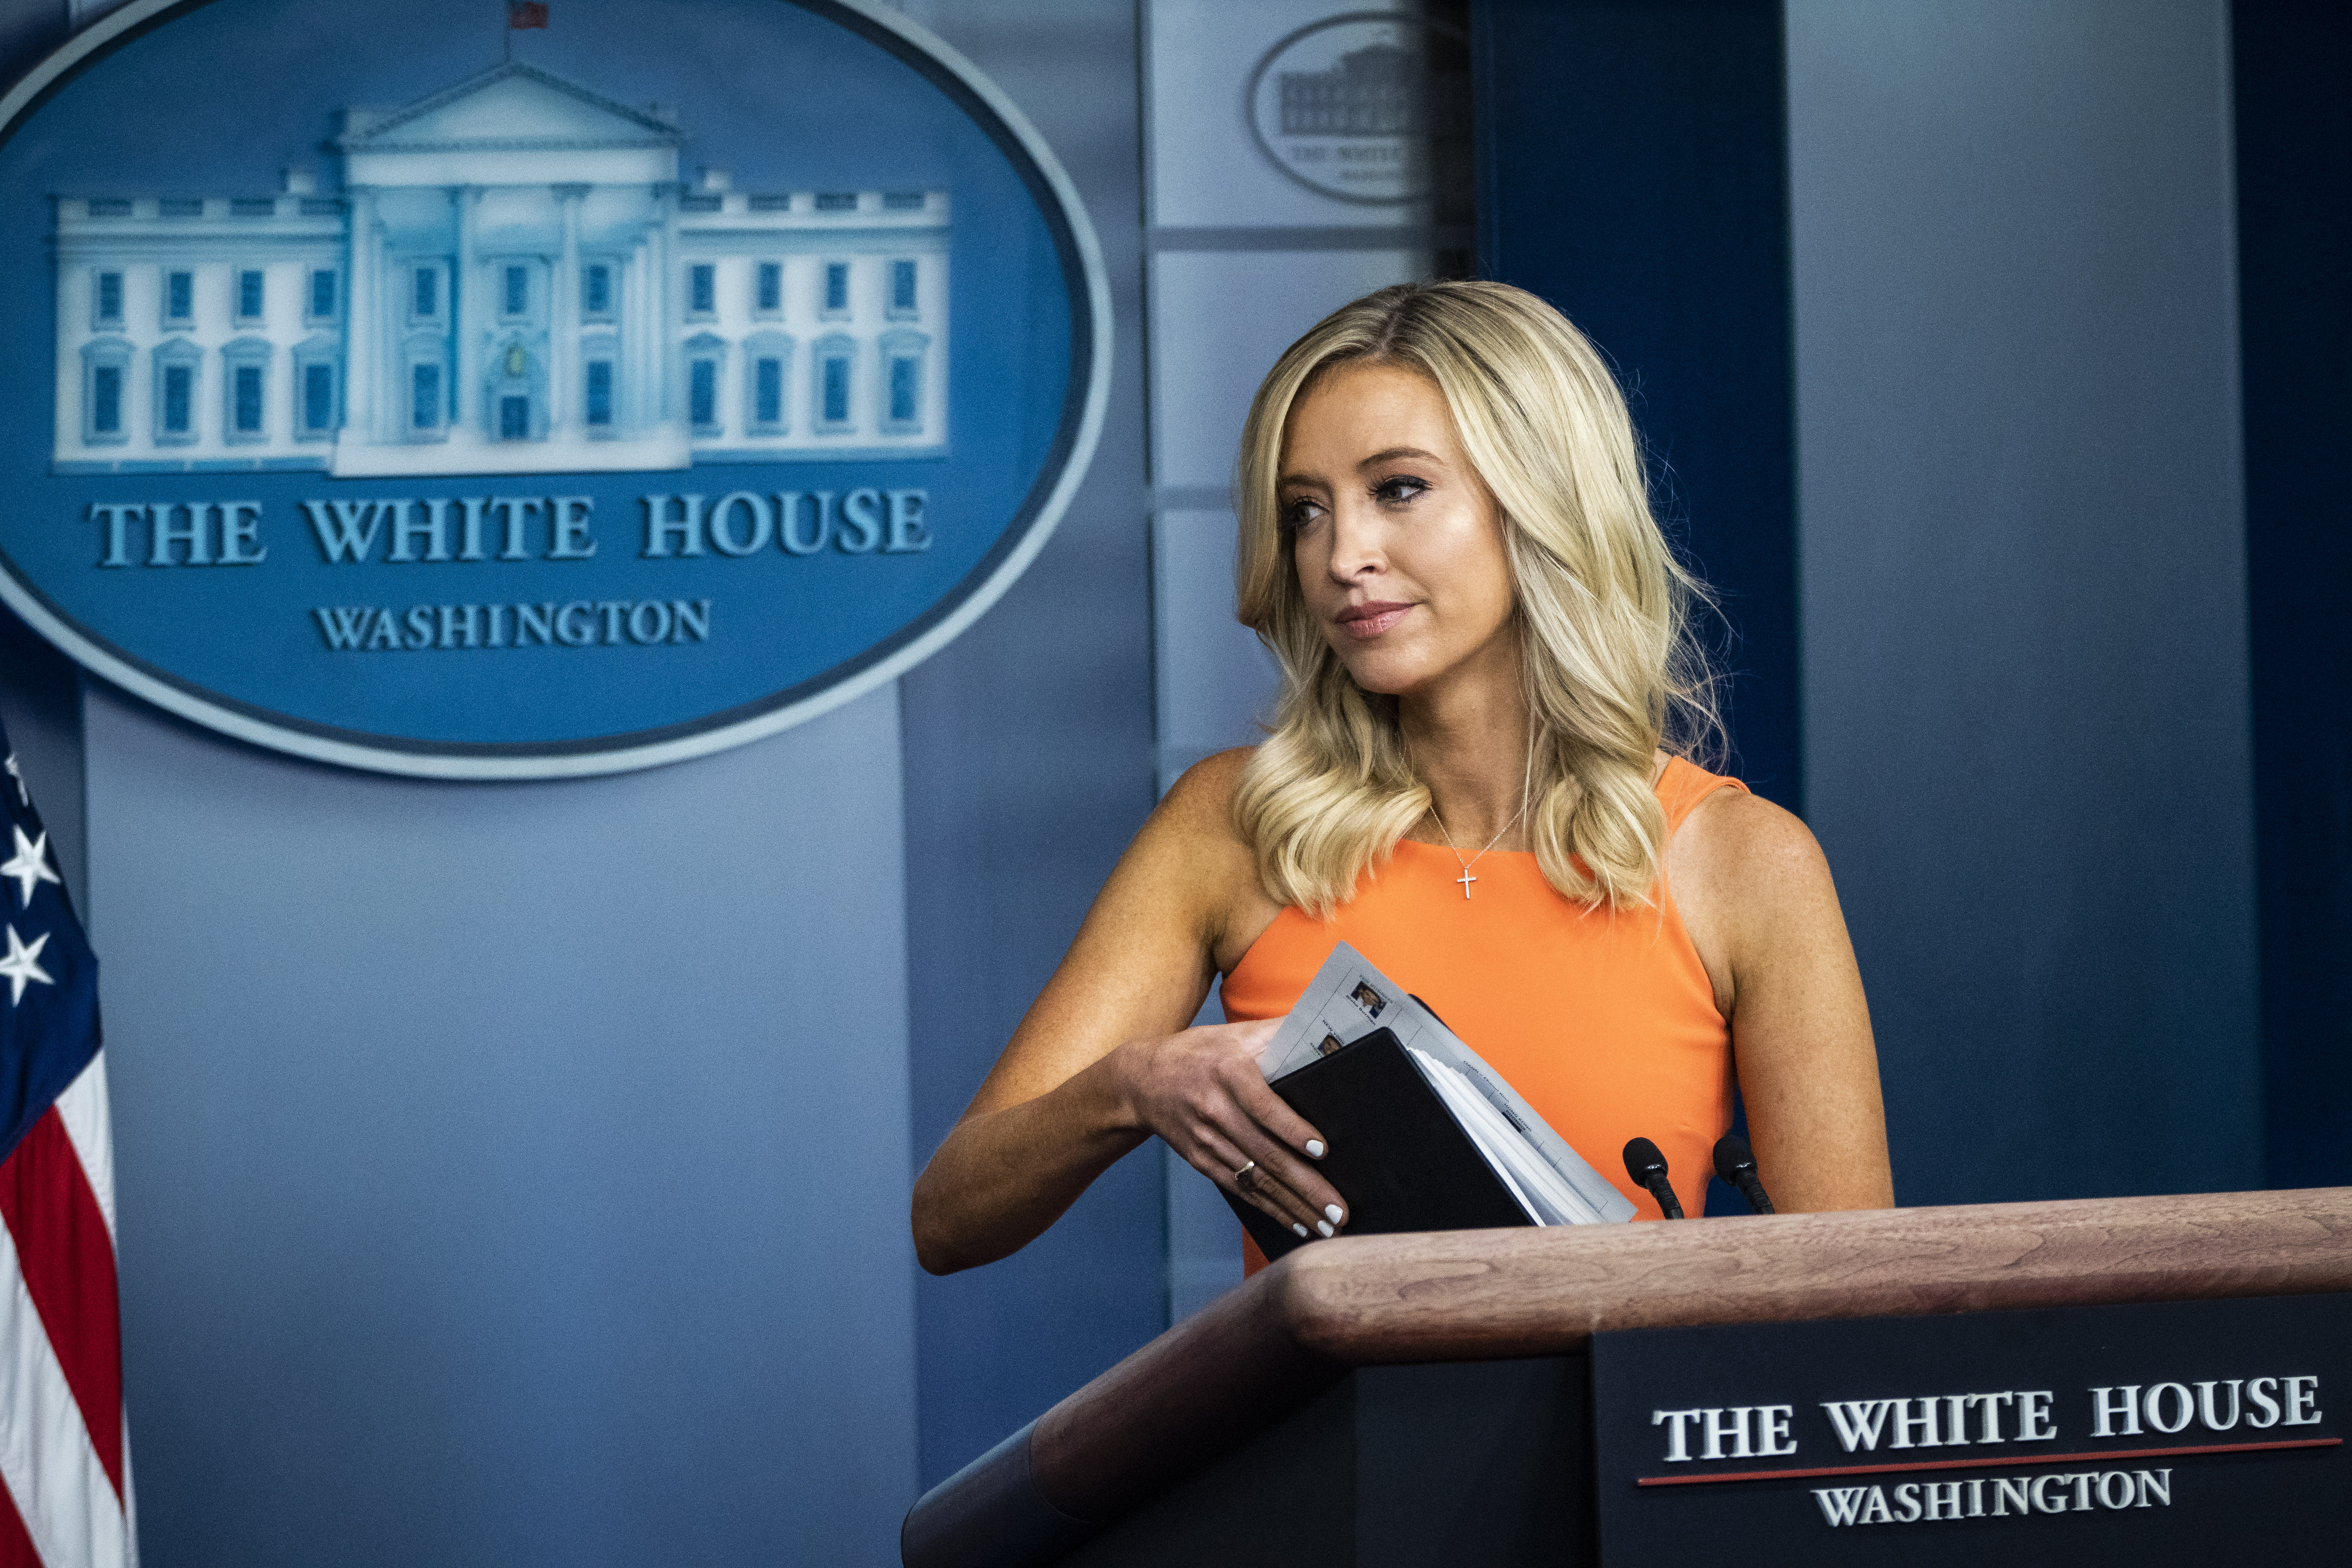 Mediagazer Kayleigh Mcenany S Abrupt Walk Offs From Press Briefings Is Almost Pure Theater Giving Her The Last Word In Disservice To Informing The Press And Public Paul Farhi Washington Post